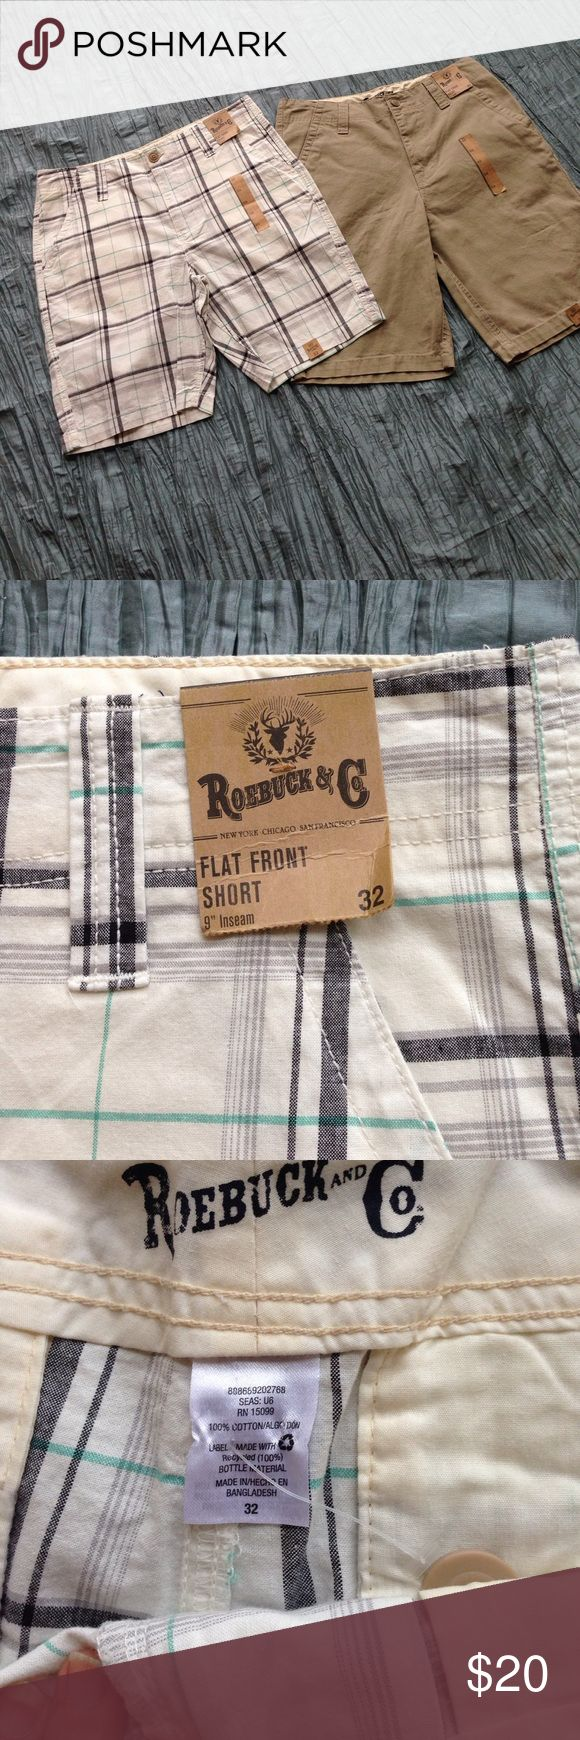 "🎈SALE🎈 2 prs. Men's shorts NWT One pair is off white, grey and green plaid. 9"" inseam. 32"" waist. The other is khaki with 11"" inseam and 32"" waist. Both are flat front. Get both for one low price! NWT Roebuck and Co. Shorts Flat Front"